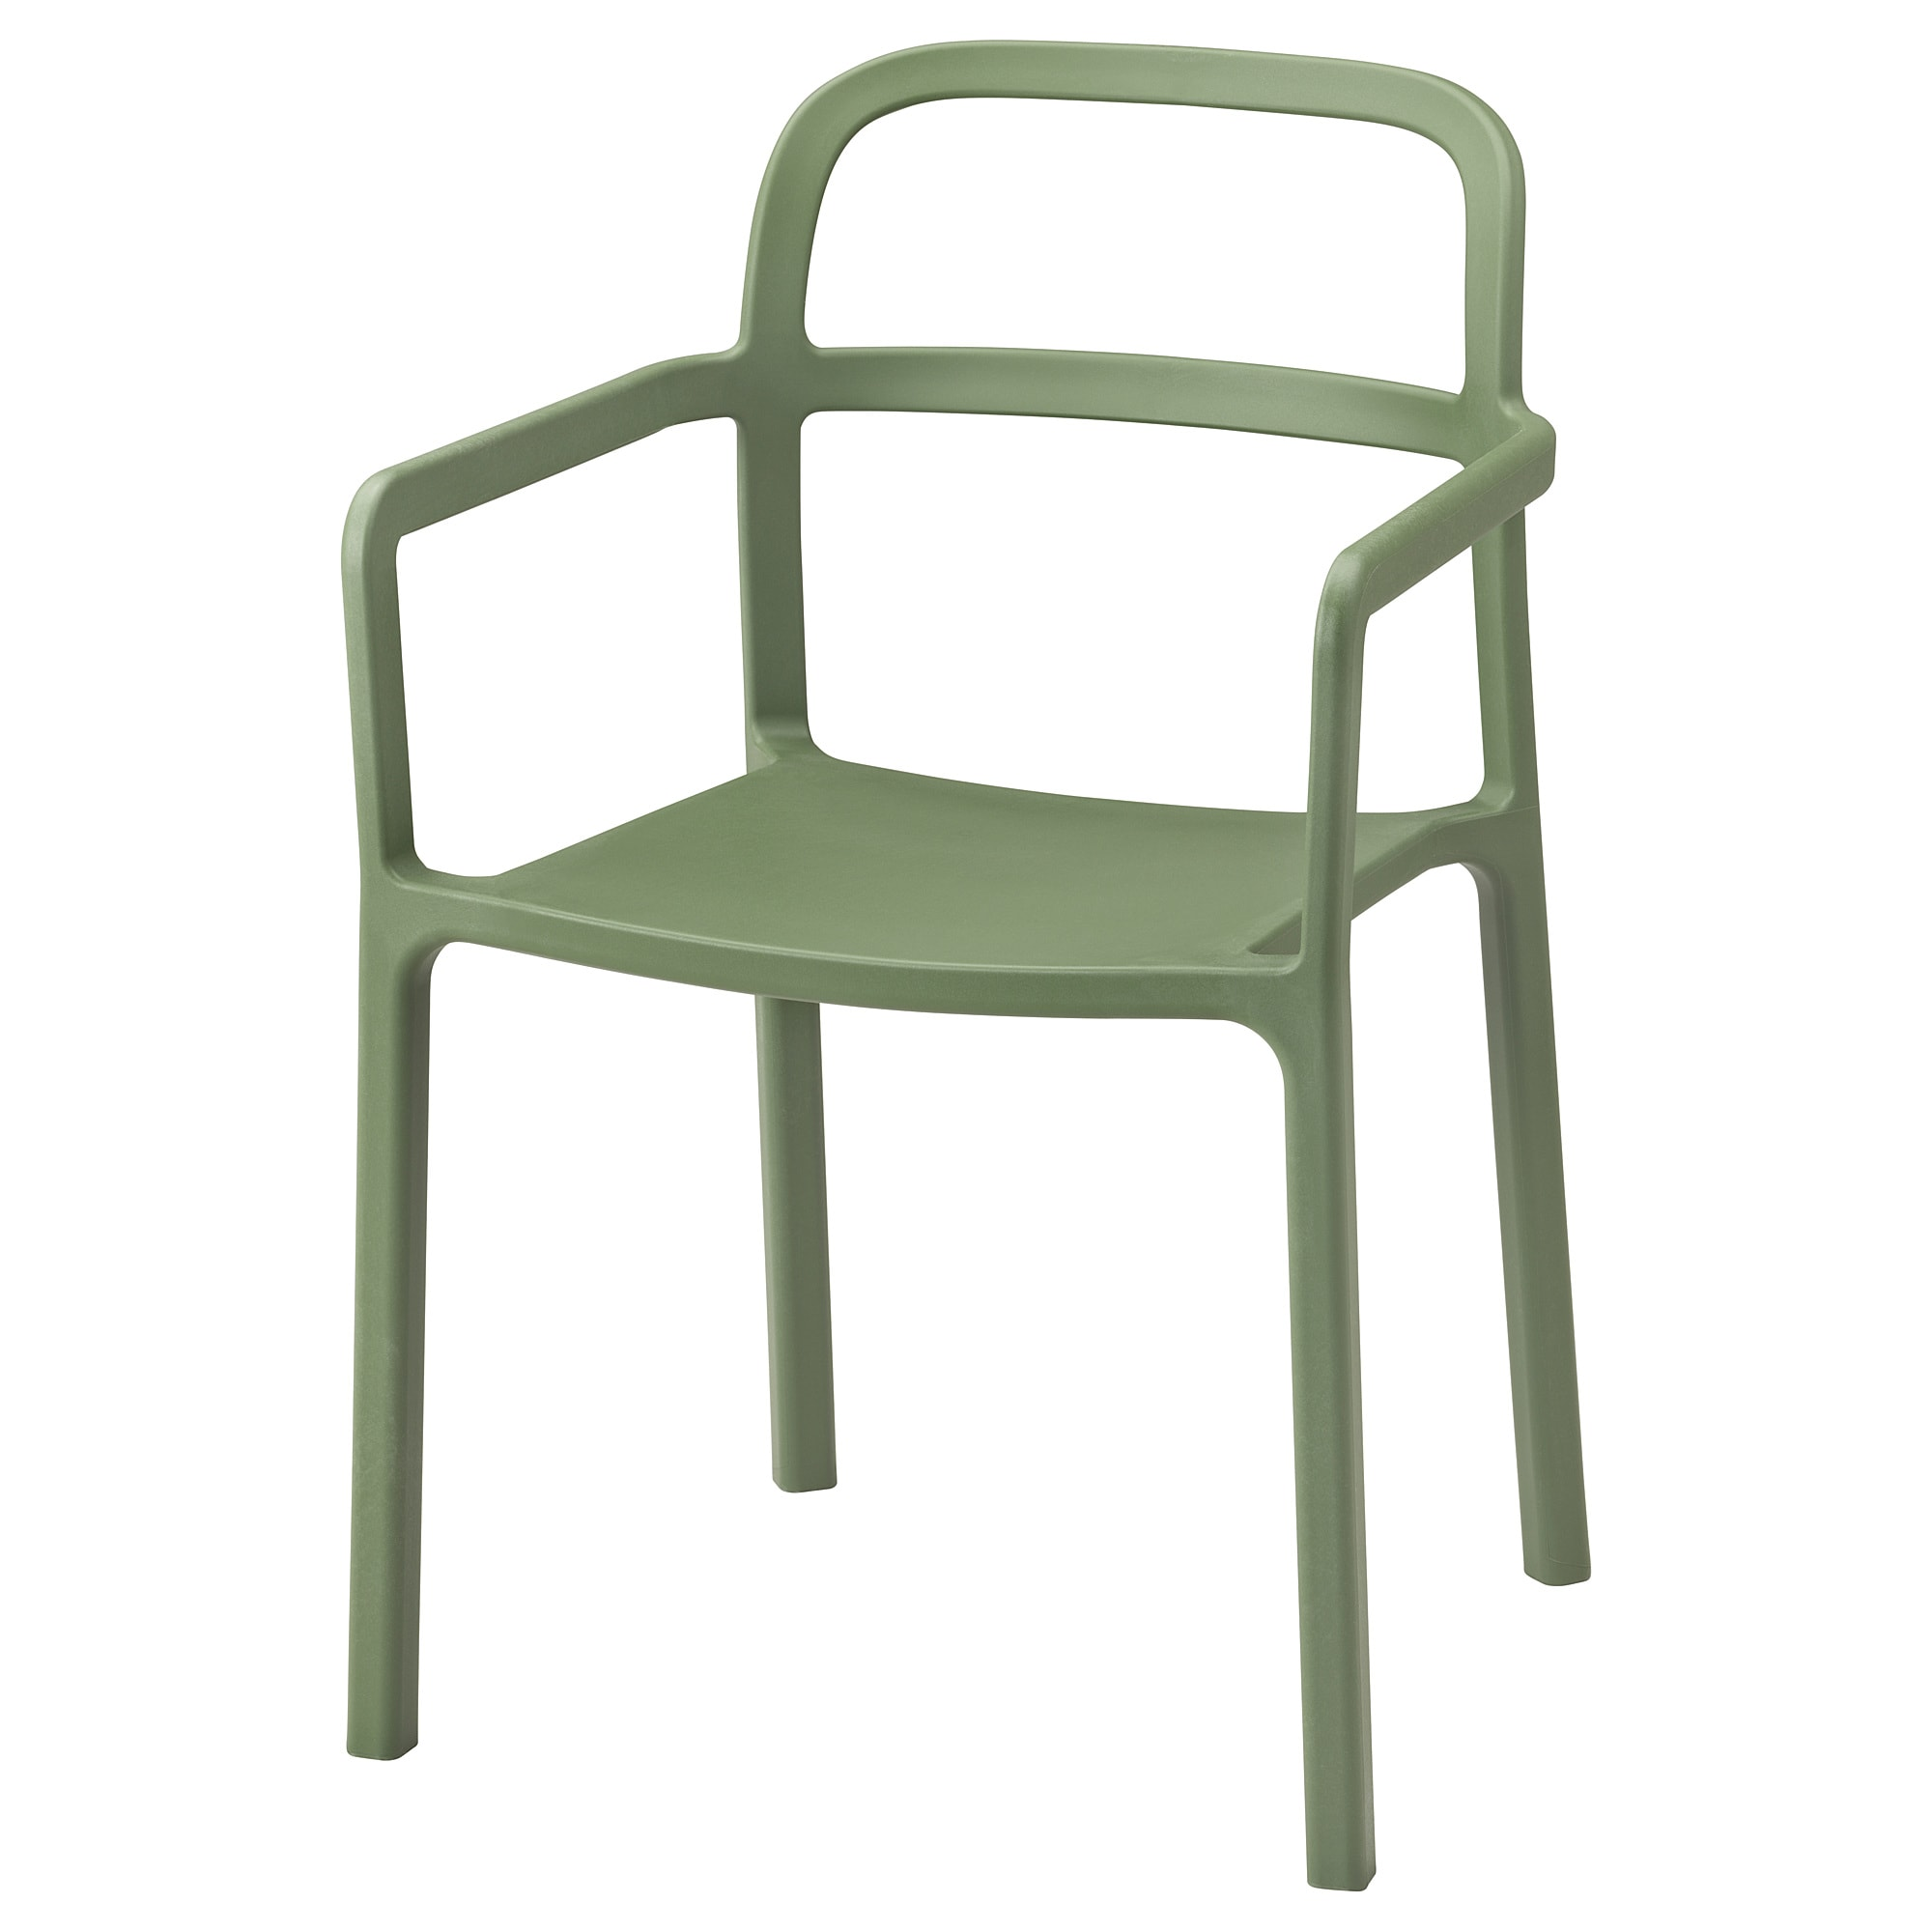 YPPERLIG Armchair, inoutdoor green | Ikea outdoor, Ikea